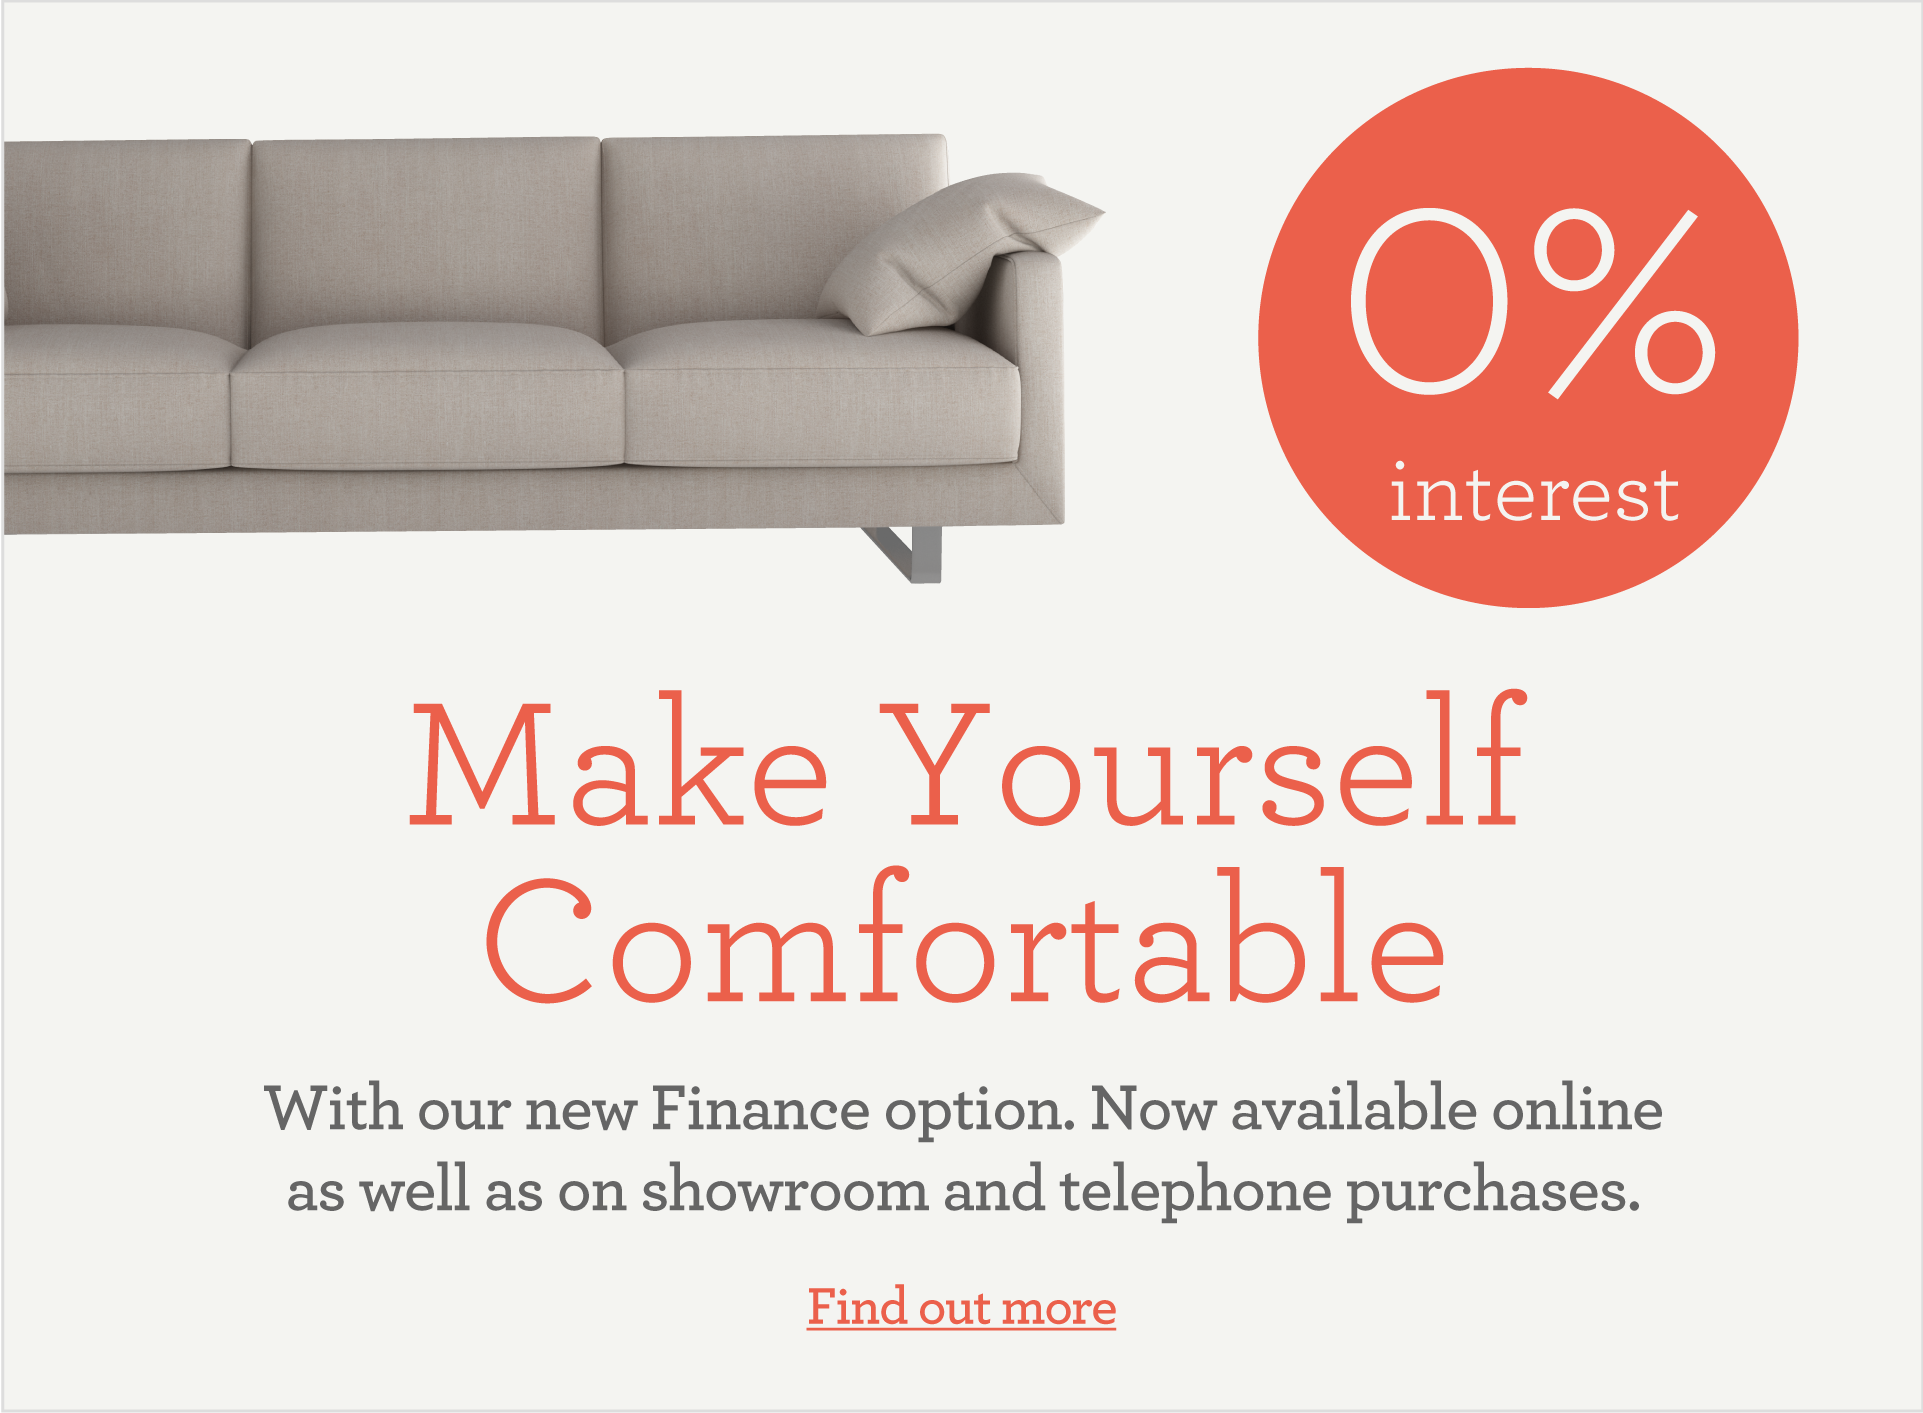 Find out more about our finance offer